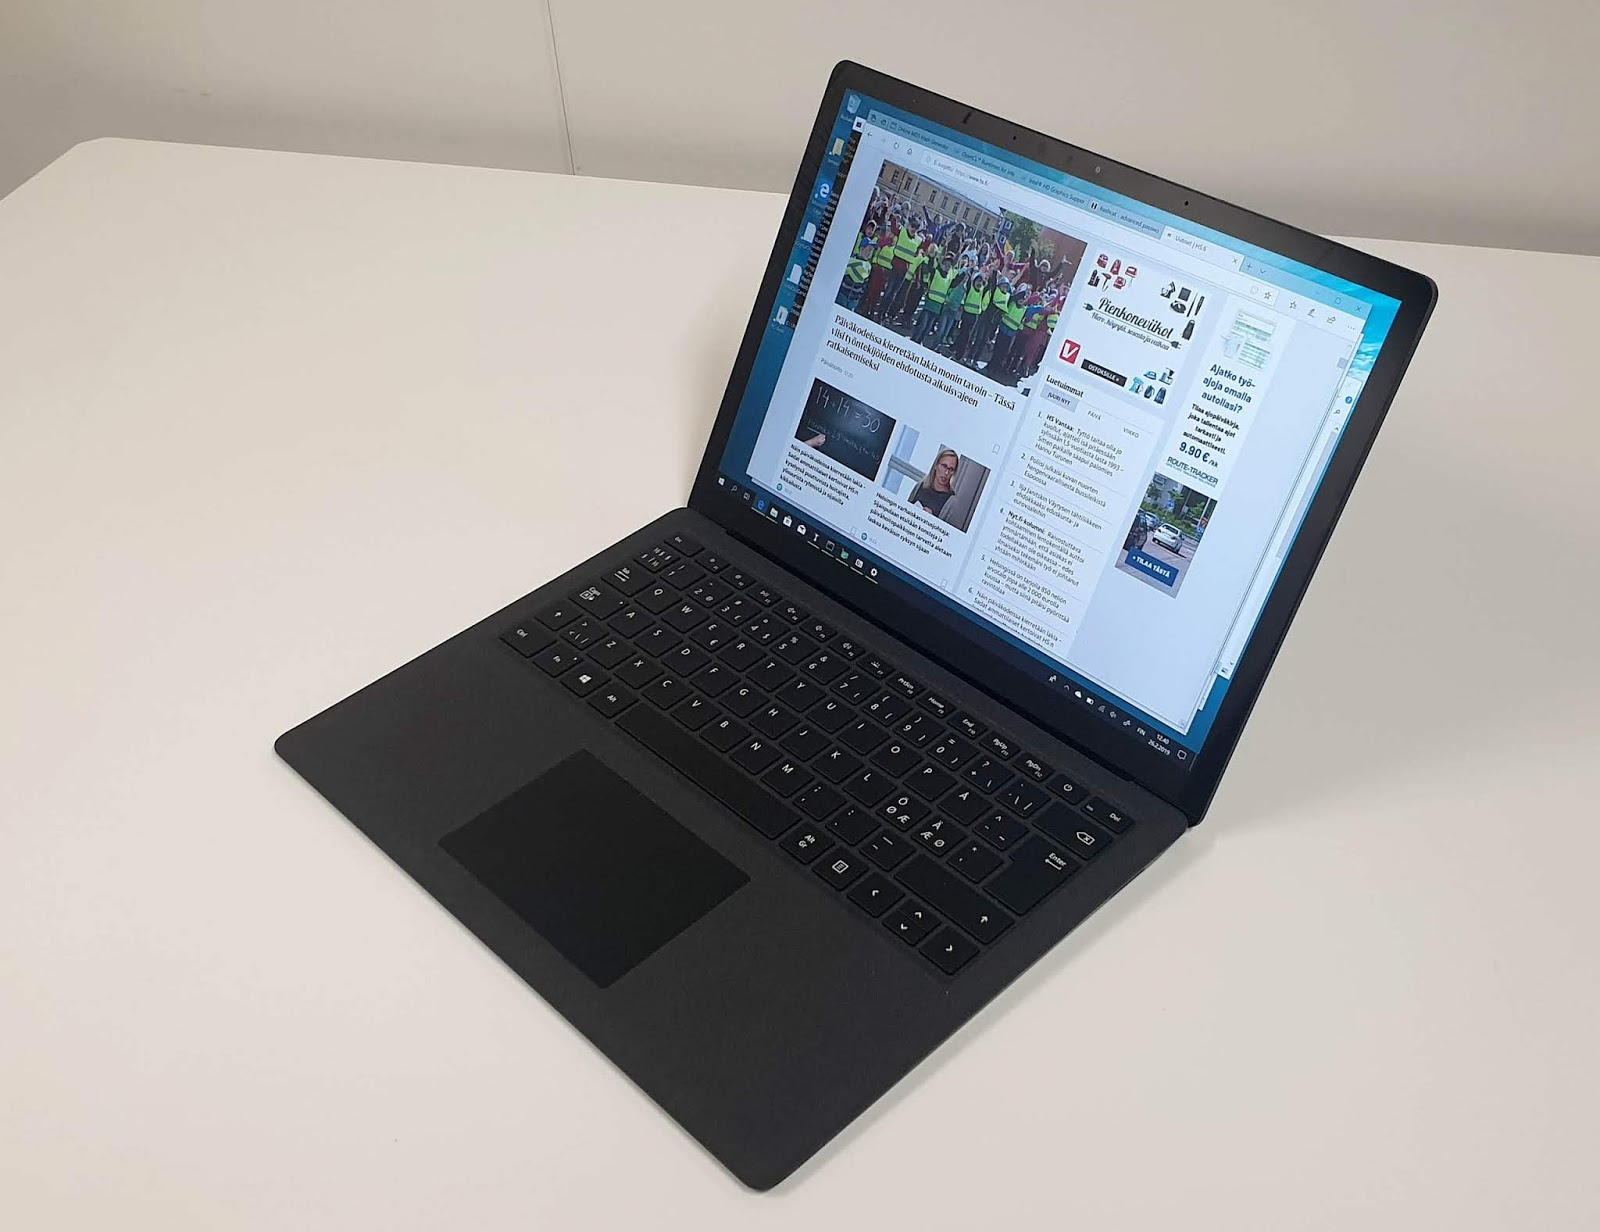 Laptop Orten Bittimittari Microsoft Surface Laptop 2 Läppäri